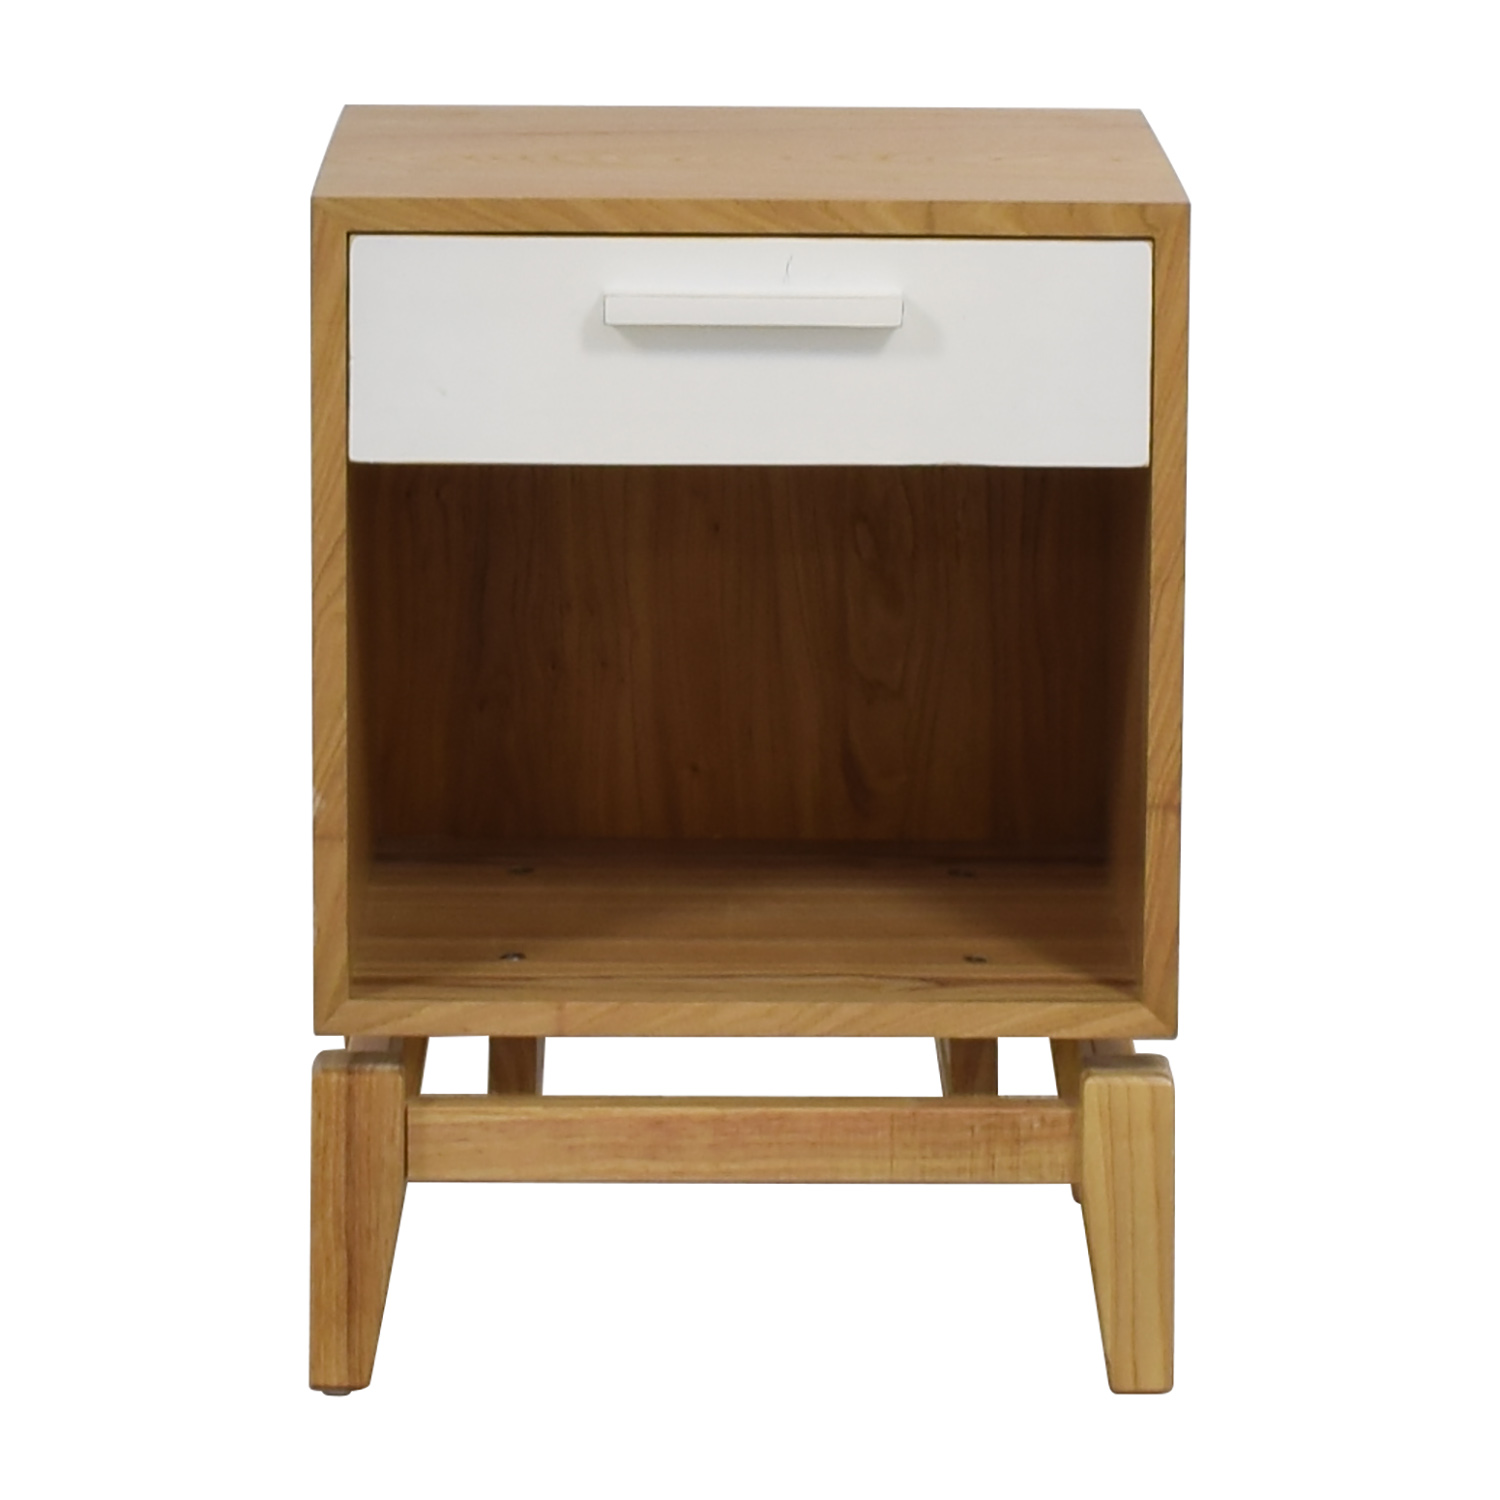 Joss & Main Joss & Main Natural and White Single Drawer End Table dimensions